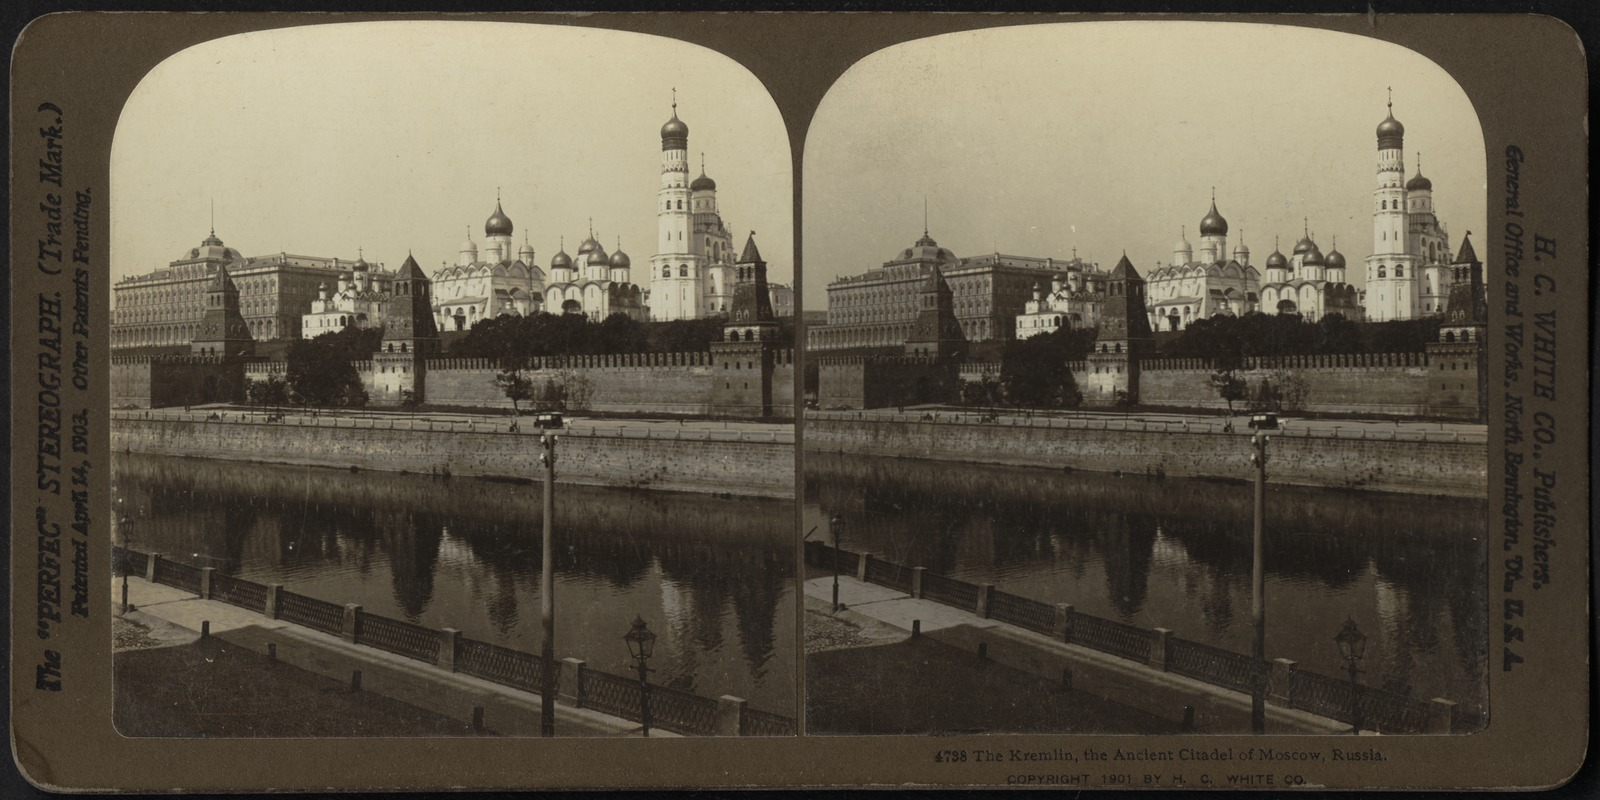 The Kremlin, the ancient citadel of Moscow, Russia